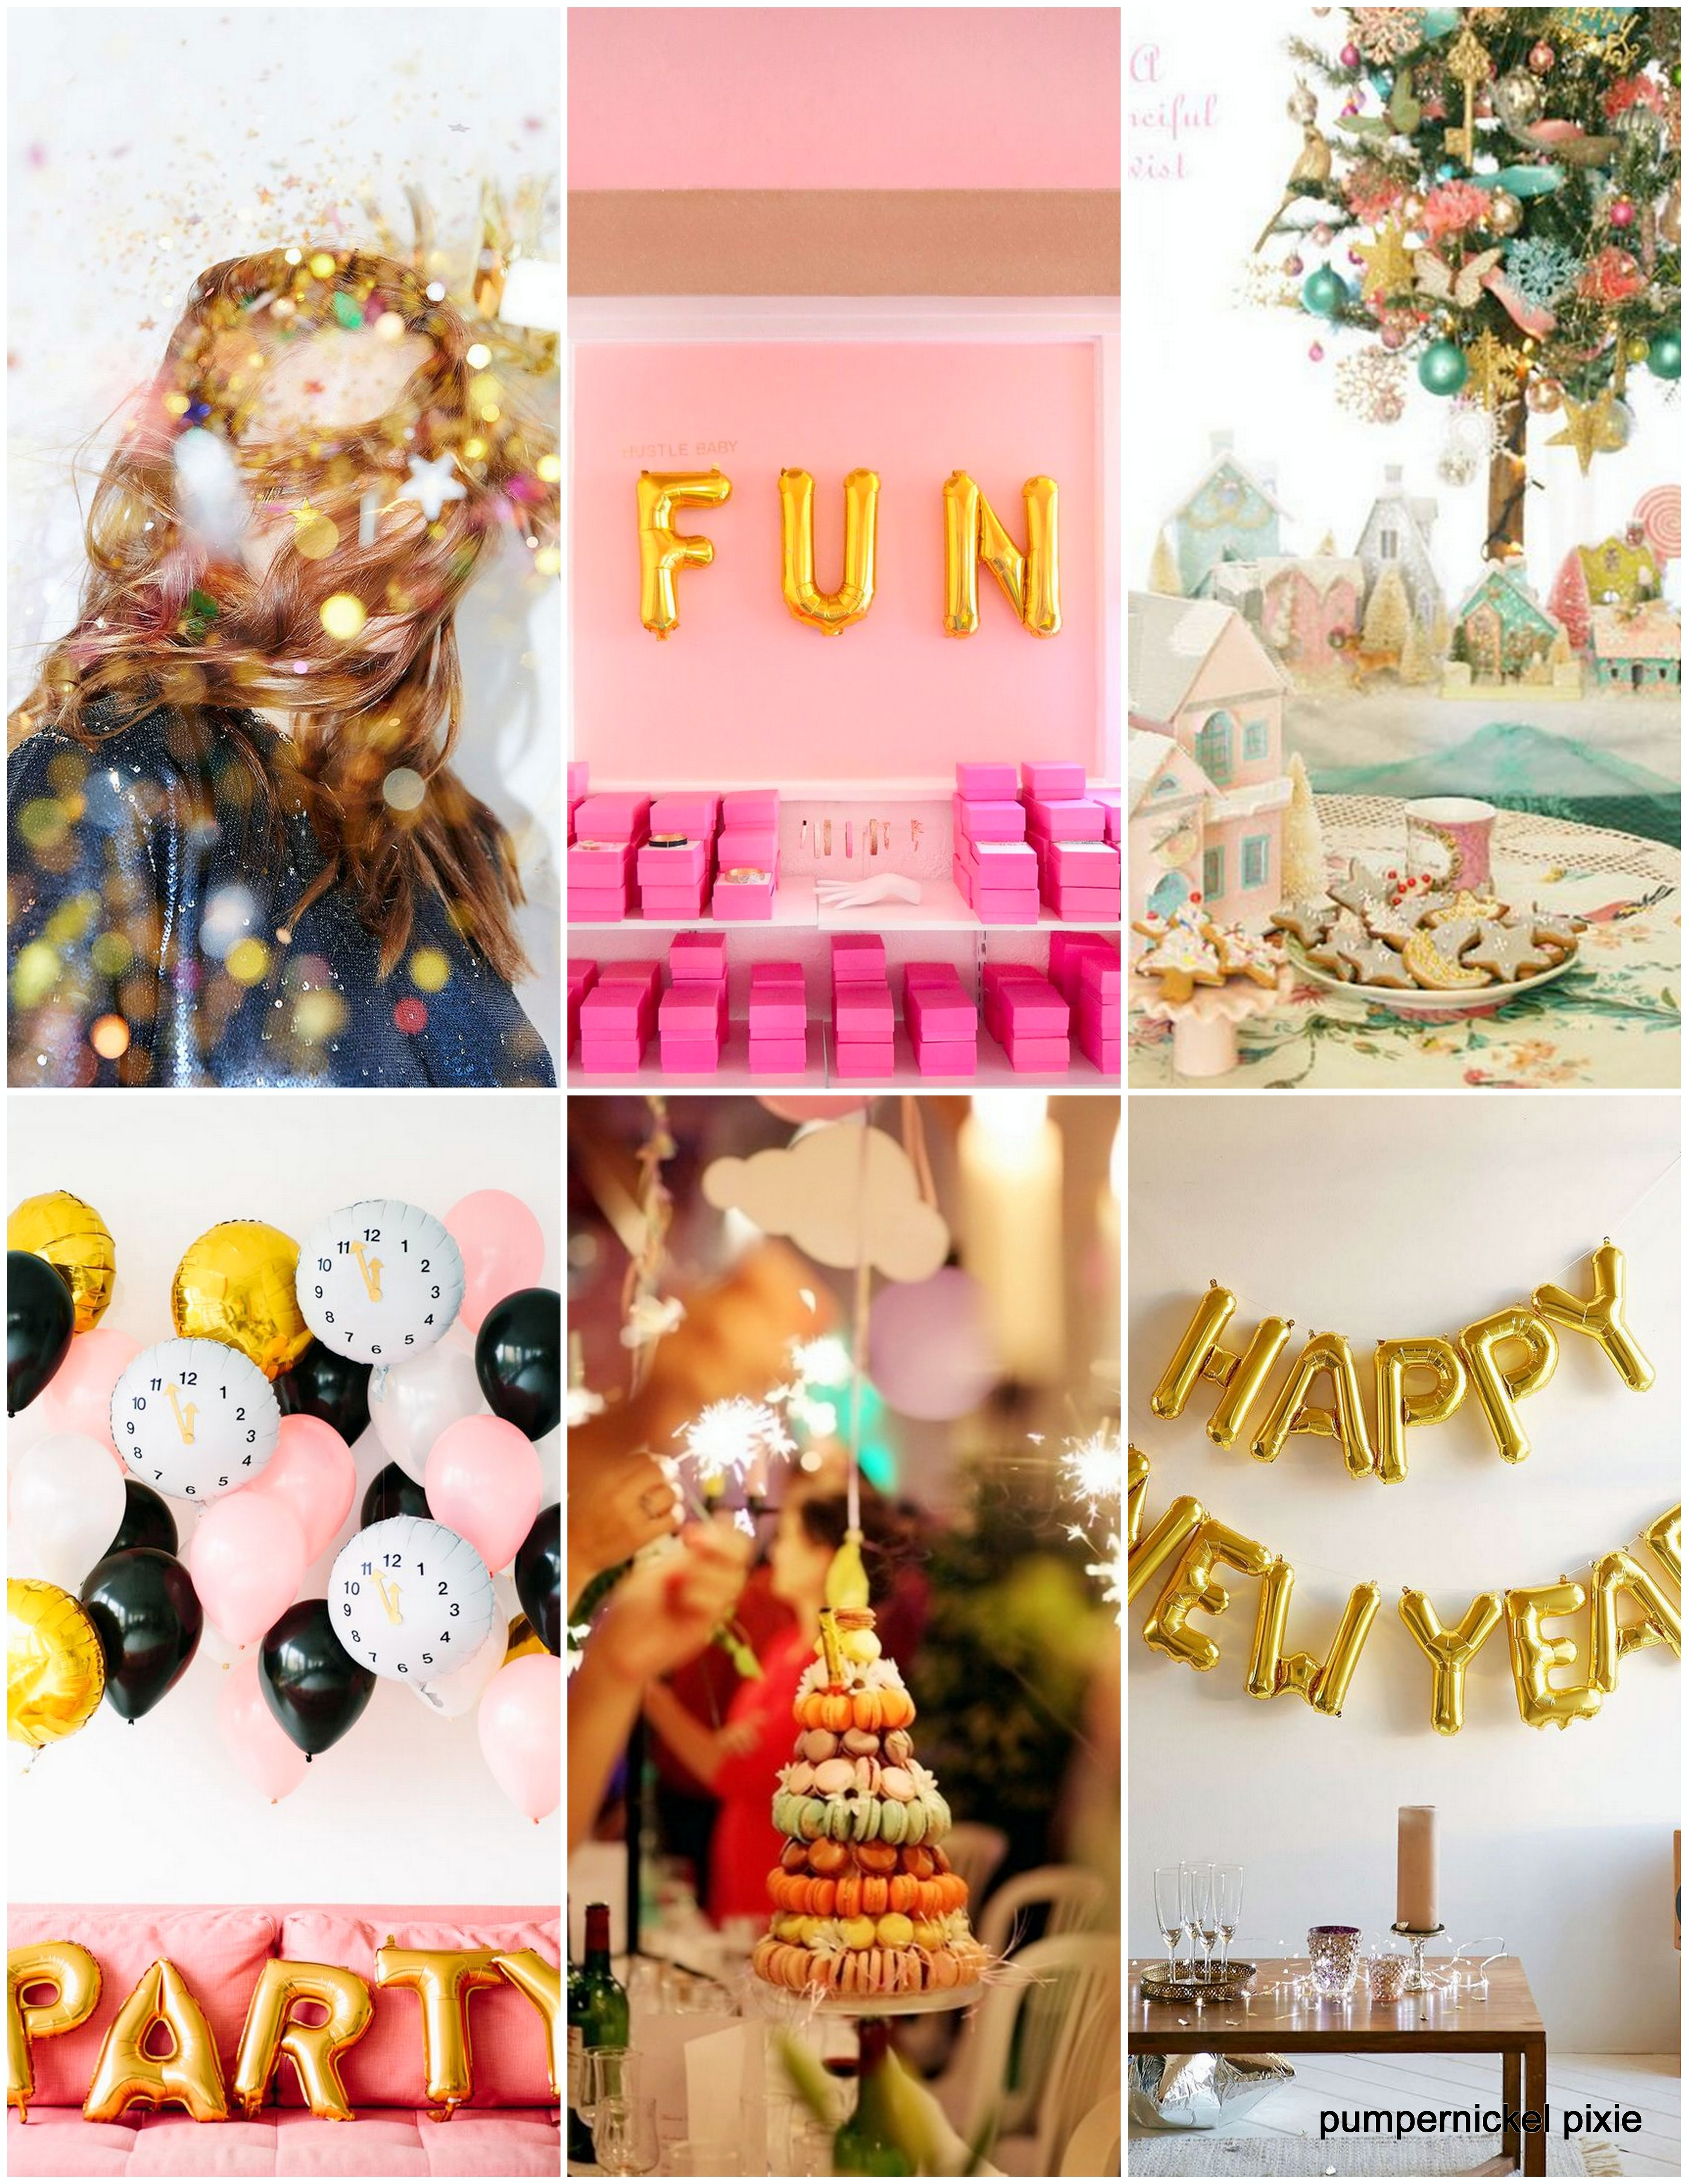 #2015 round up, 2015, art, beauty, diy, fashion, food, health, holidays, living, optimism, owls, photography, positiveness, recipes, style, travel, year end round up, yoga, happy holidays, christmas, new years, christmas 2015, pumpernickel pixie